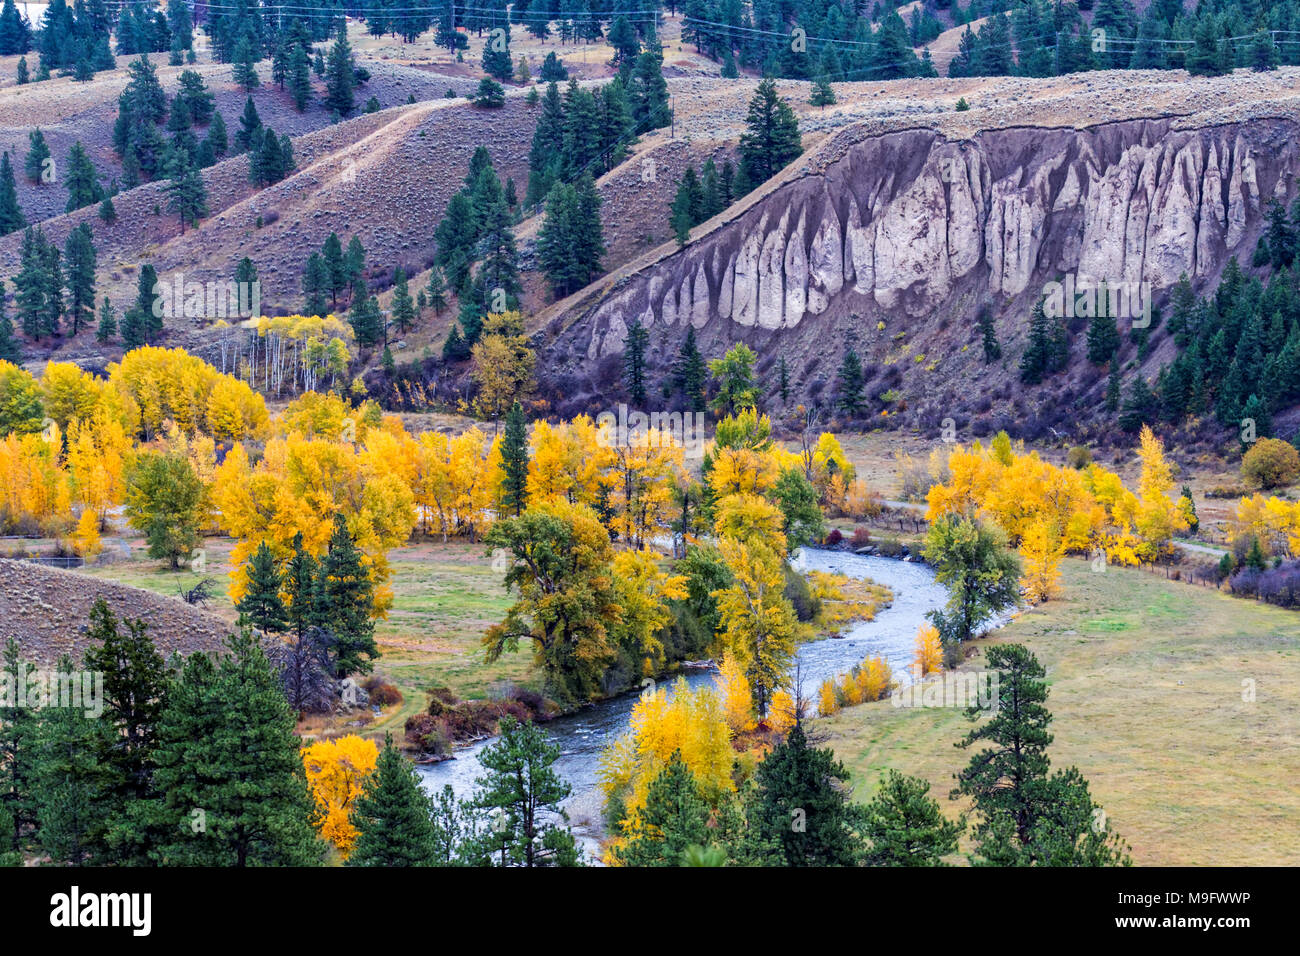 42,653.07349 landscape with twisting creek colorful valley meadow, yellow fall leaves on deciduous trees; conifers, cliff - Stock Image